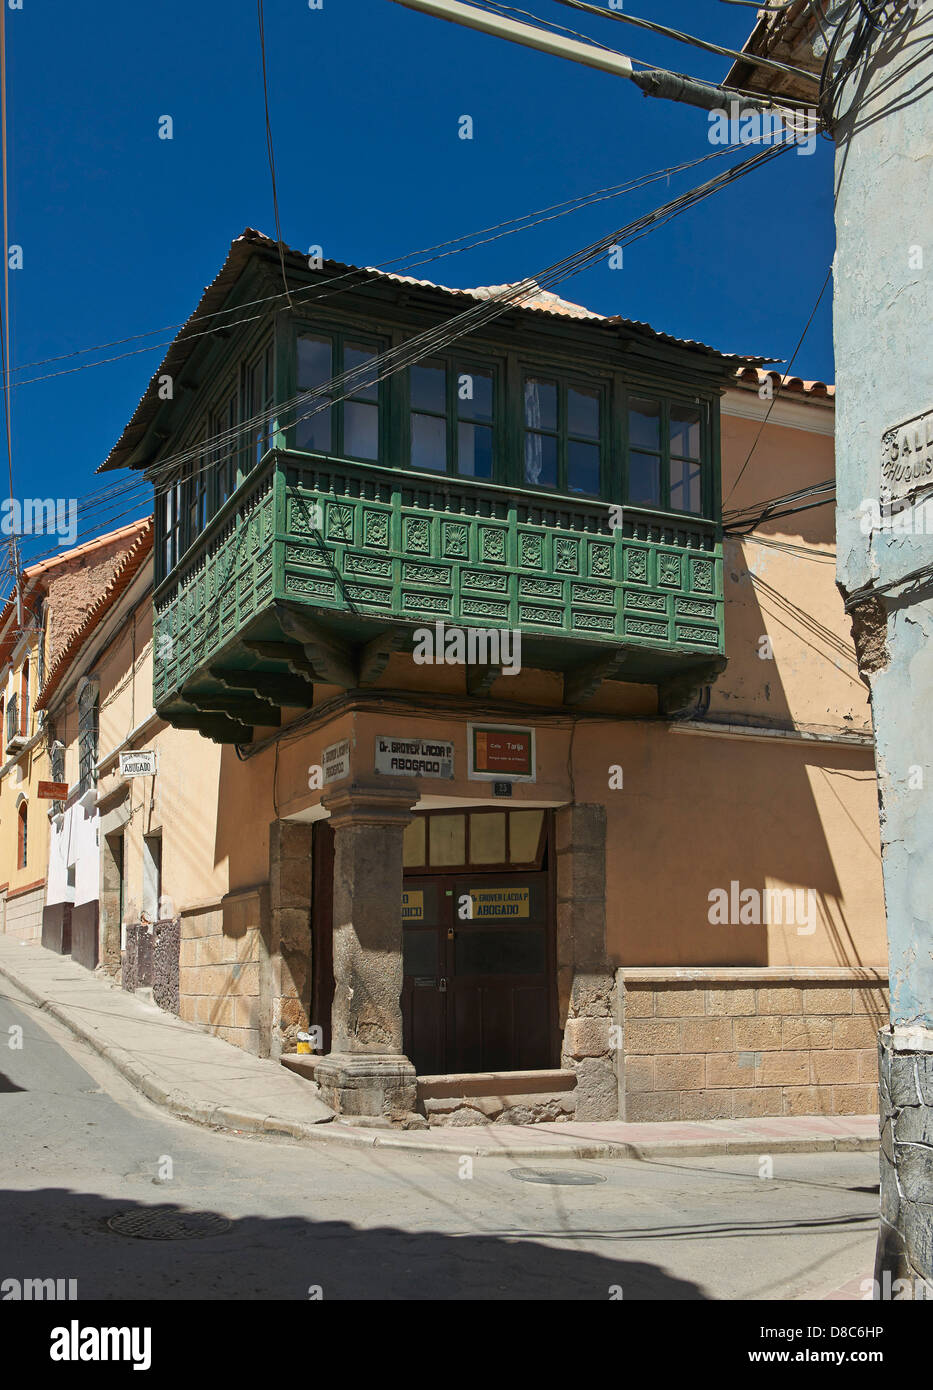 Colonial architecture in the streets of Potosi, Bolivia - Stock Image